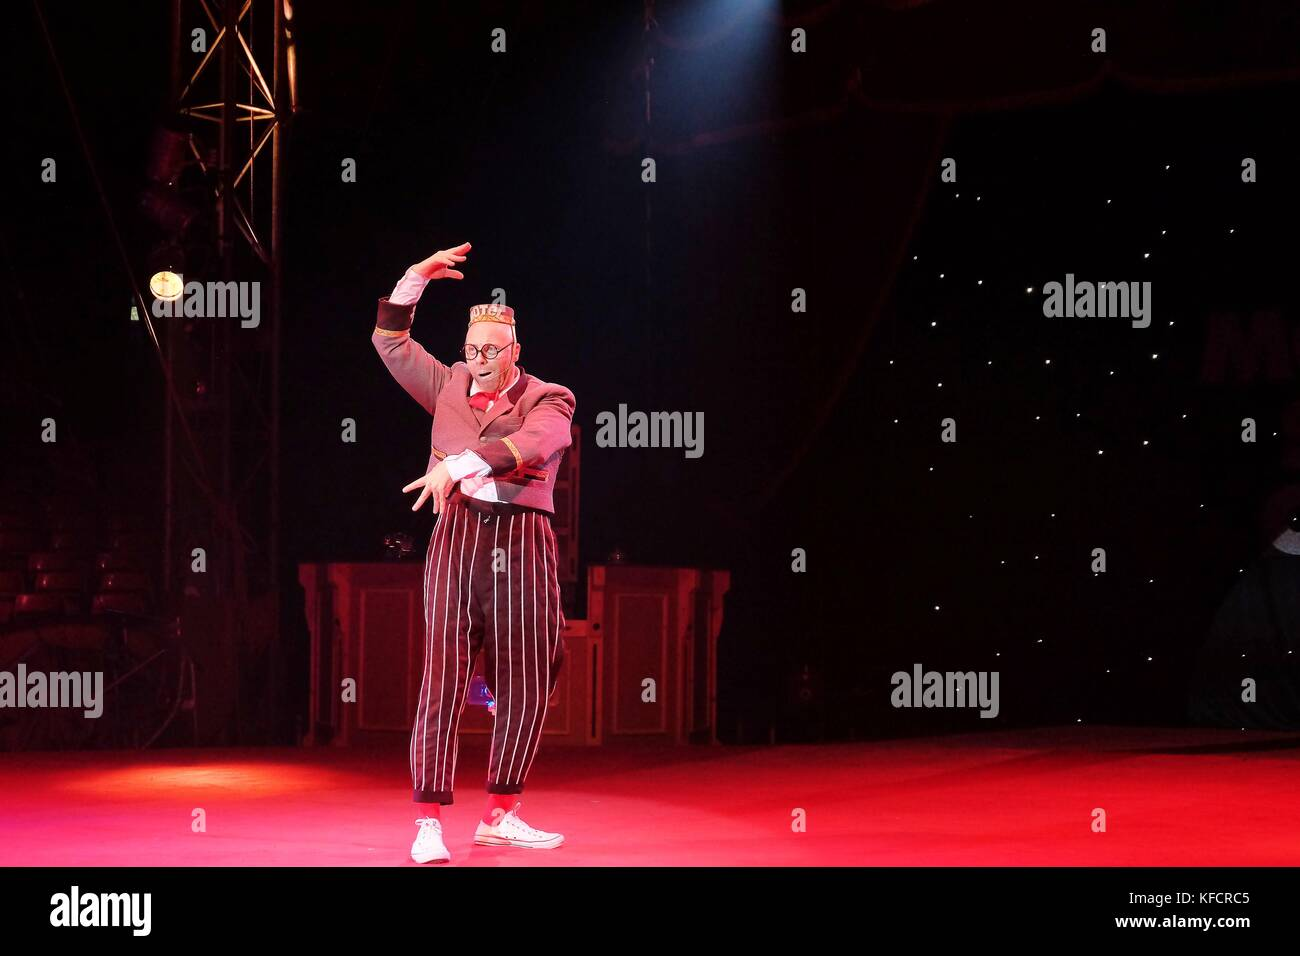 circus performers stripey trousers and hat Stock Photo